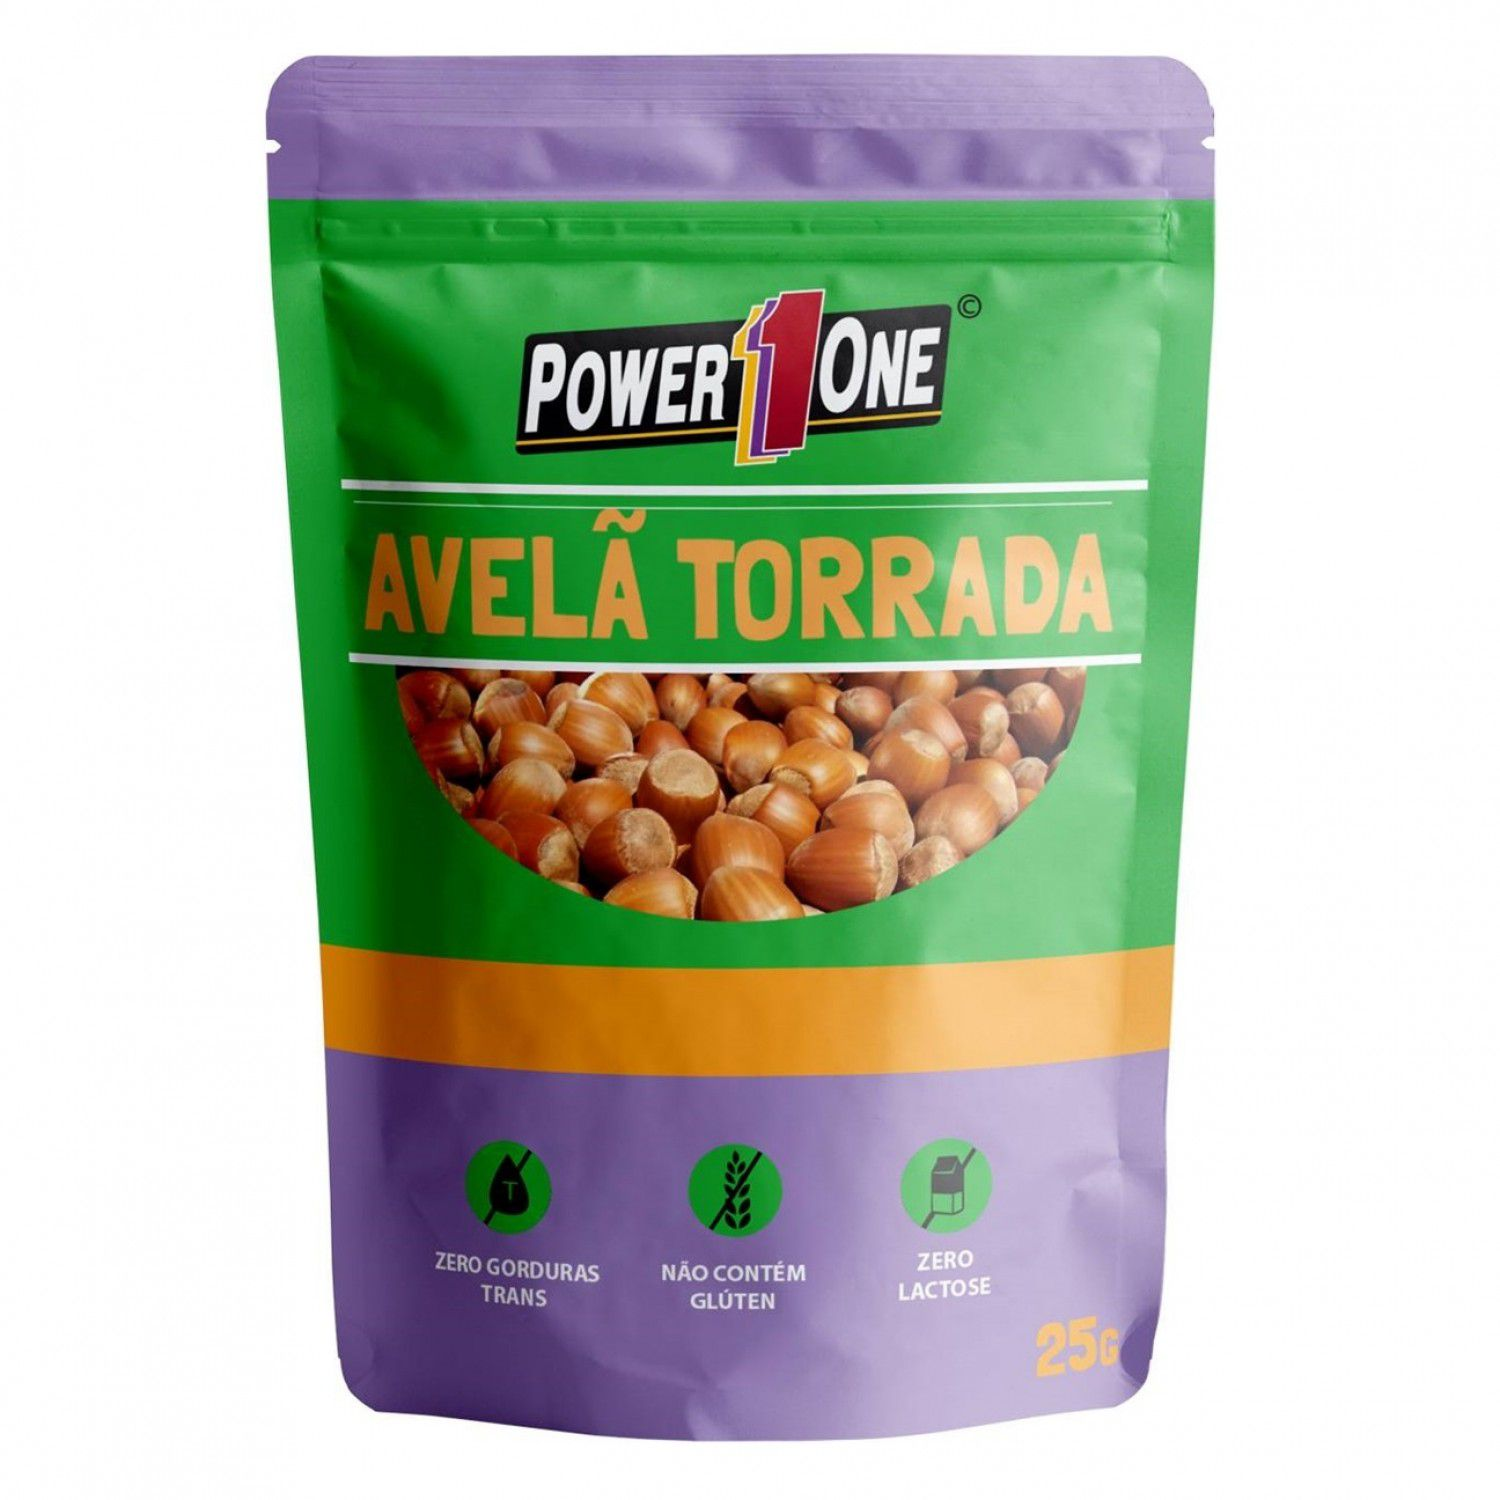 Nuts Avelã Torrada (25g) - Power1One